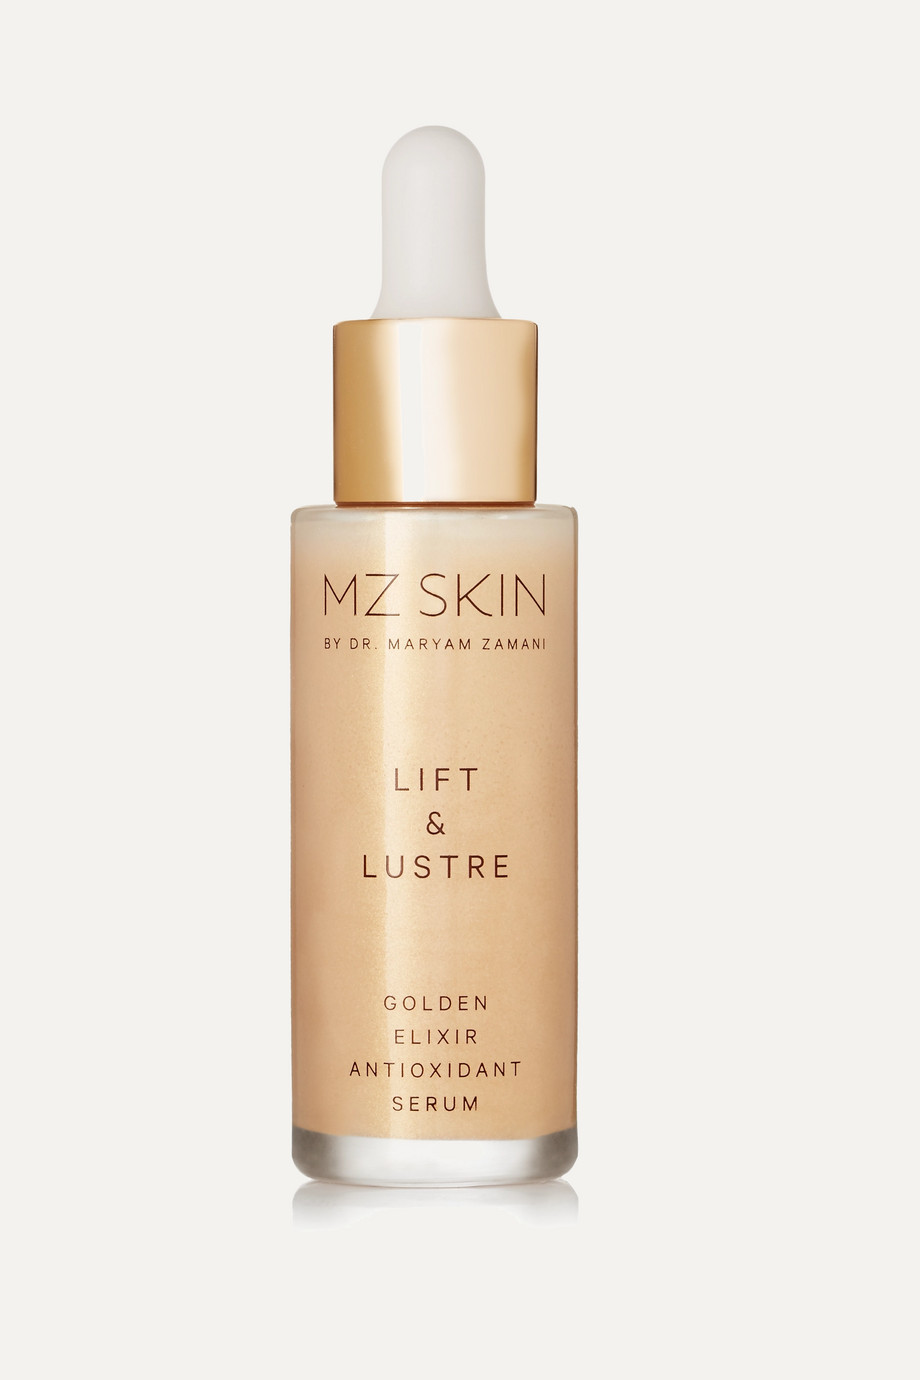 MZ SKIN Lift & Lustre Golden Elixir Antioxidant Serum, 30ml